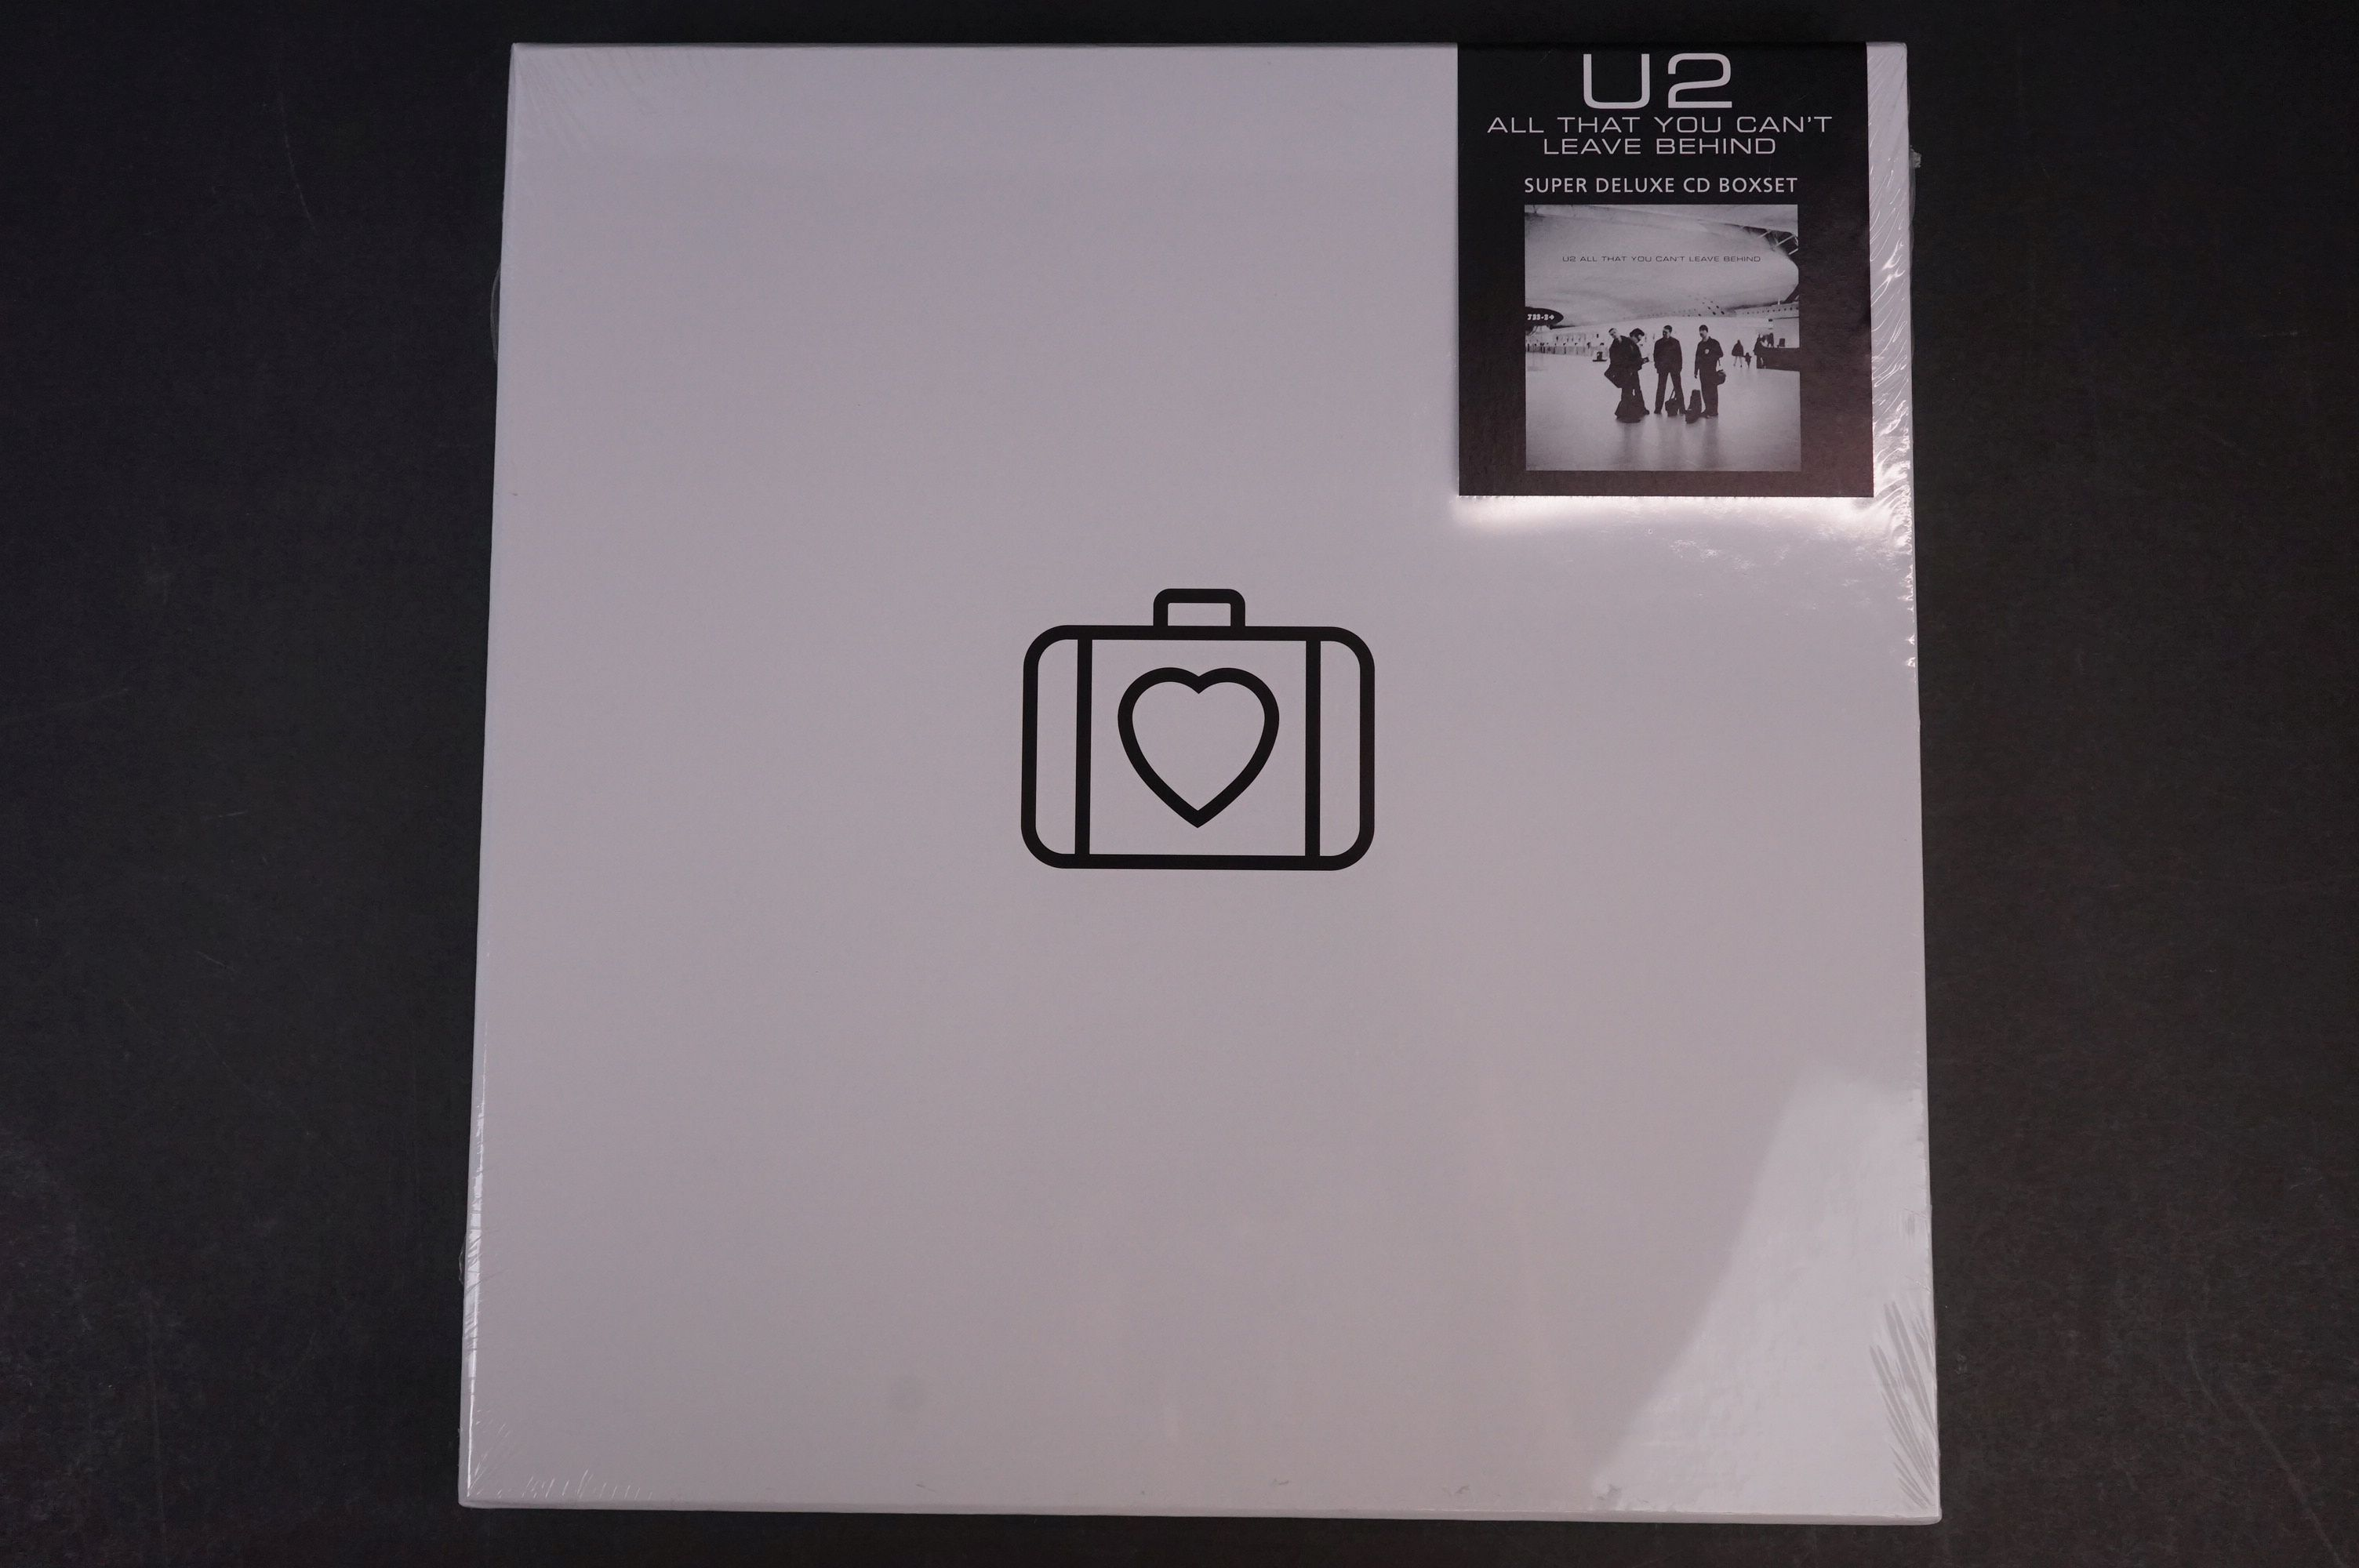 CD - U2 All That You Can't Leave Behind Super Deluxe CD Box Set, LC00407, sealed